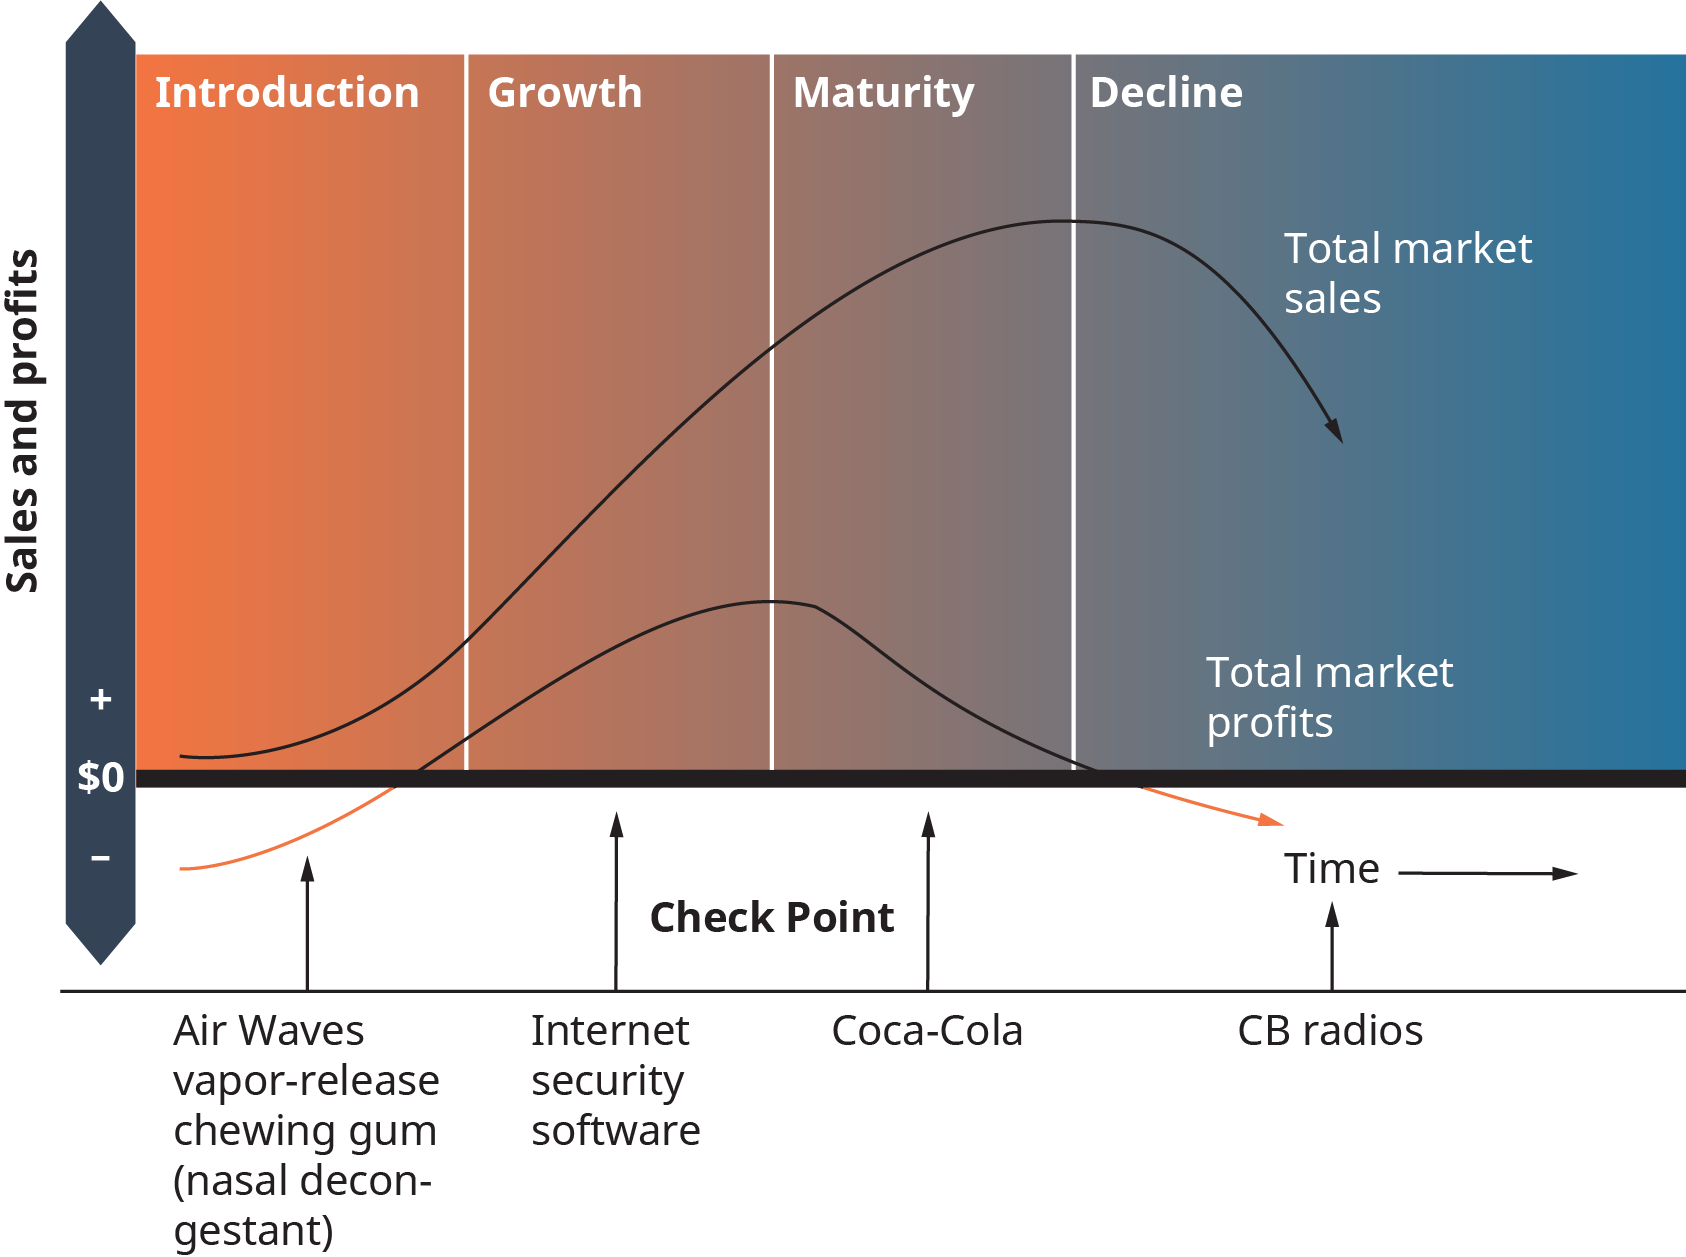 The graph shows sales and profits along the vertical left side. Moving left to right there are columns, and represent time moving. These are labeled introduction, then growth, then maturity, then decline. Below the graph, there are products labeled, each corresponding to one of the stages or columns above. In the introduction phase, sales are profits are low, money can be in the minus. Product is shown as Air waves vapor release chewing gum, a nasal decongestant. Next, in the growth phase the sales and profits increase. This is shown as an internet security software. Next, in the maturity phase sales and profits are at their highest; and this is shown as Coca cola. The area between growth and maturity is a check point. Next comes the decline, where total market sales drop, as do total market profits. This is shown as C B radios.